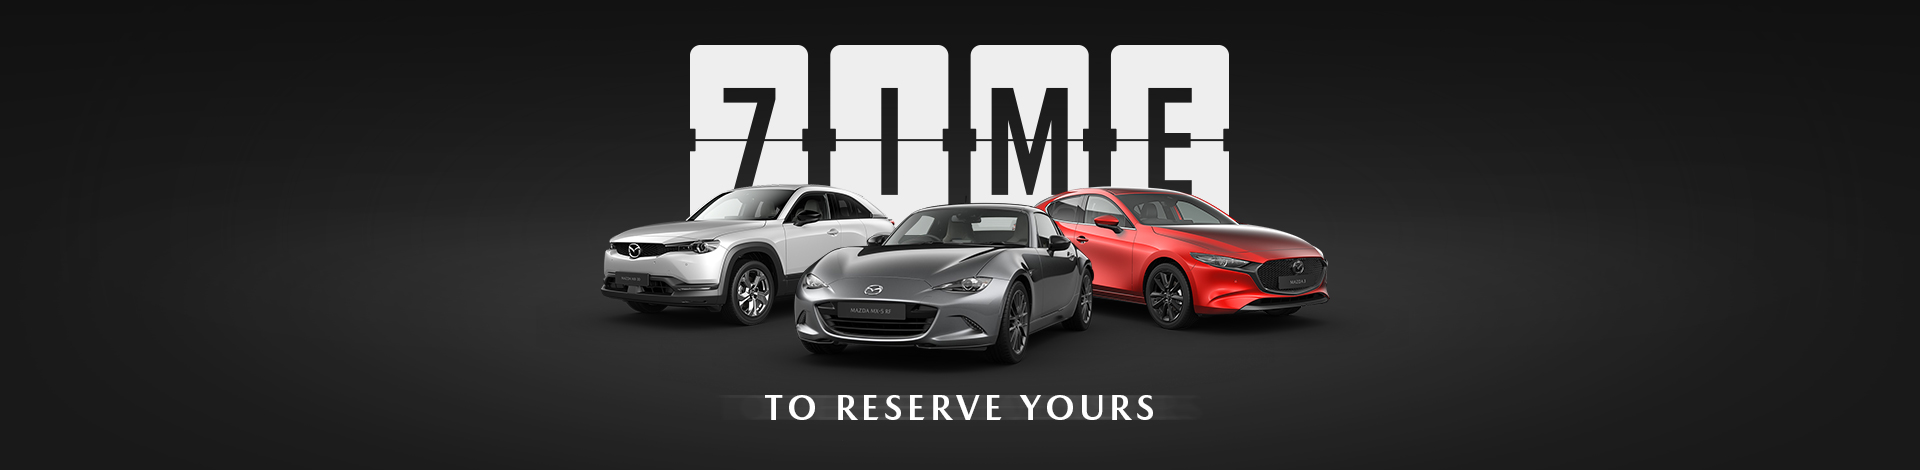 /mazda 71ME to reserve yours banner